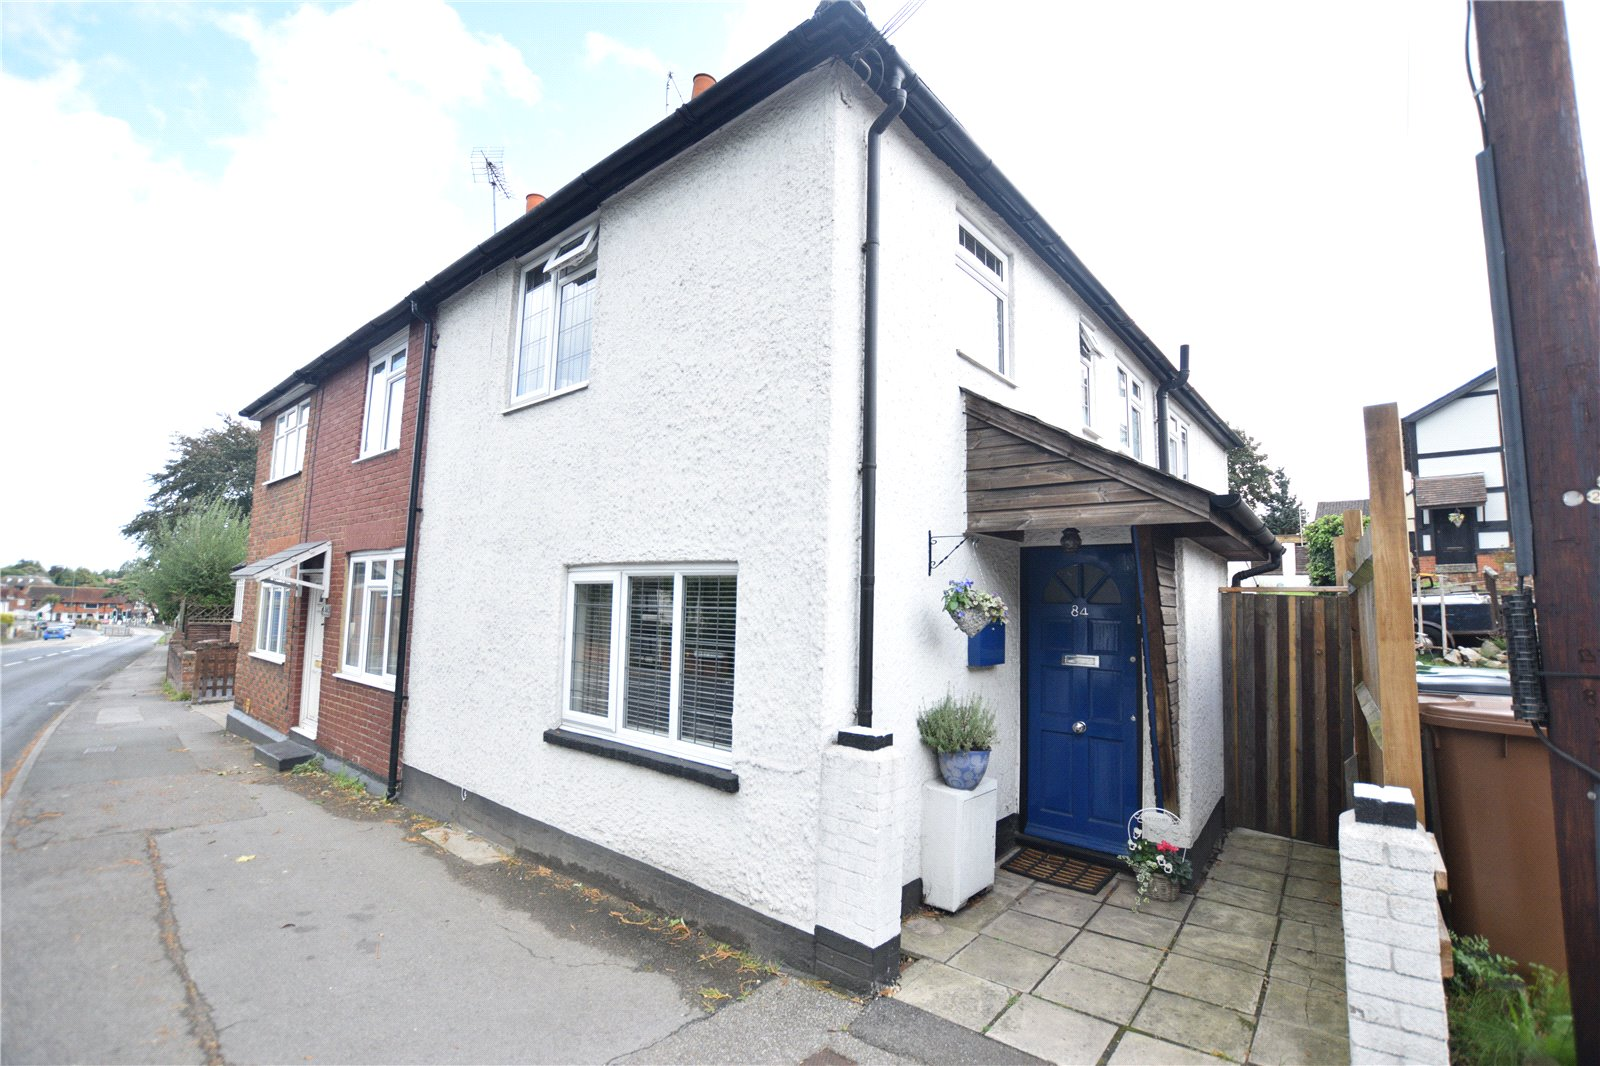 2 Bedrooms End Of Terrace House for sale in London Road, Bagshot, Surrey, GU19